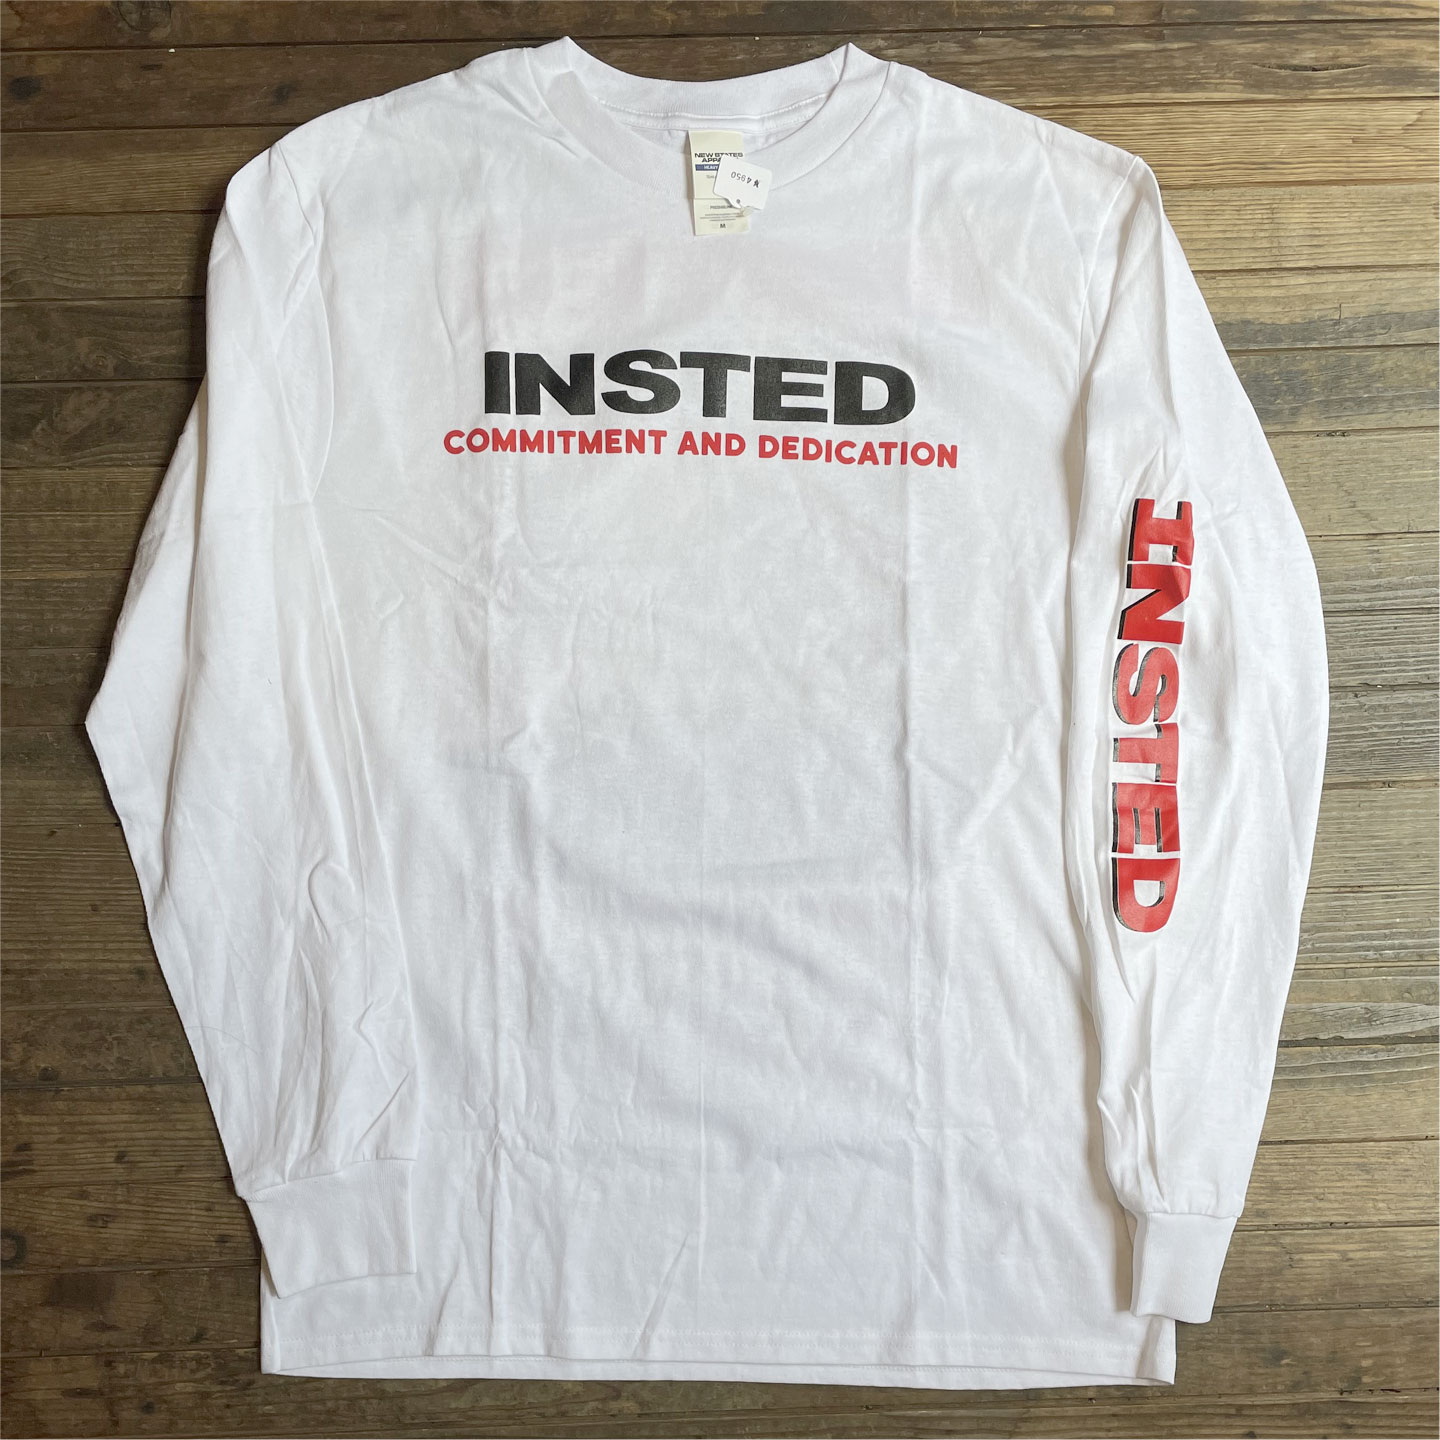 INSTED ロングスリーブTシャツ TOUR88